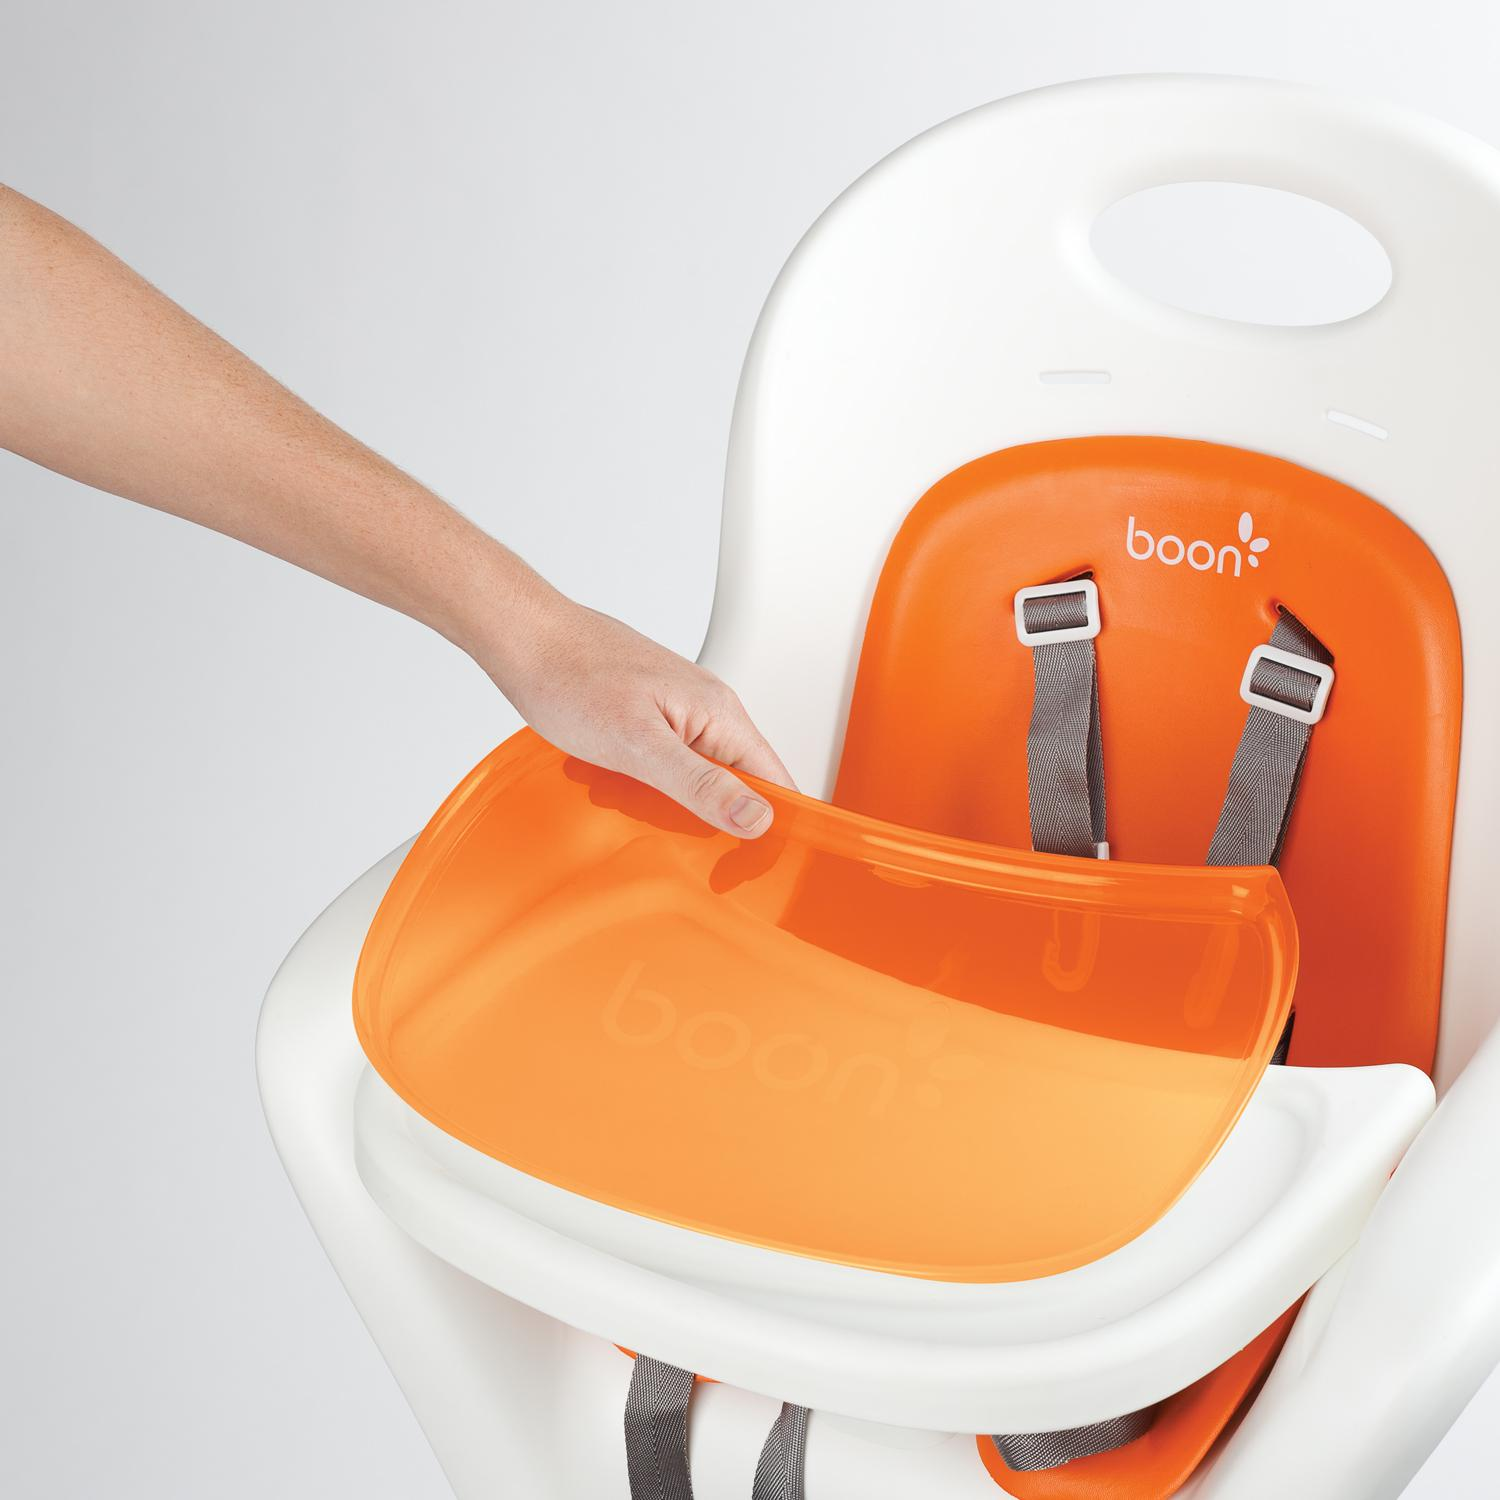 Boon flair pedestal high chair white orange walmart com - Whether Youu0027re Expecting Or Know Someone Who Is This Highchair Is Any Dream Boon Flair High Chair This Highchair